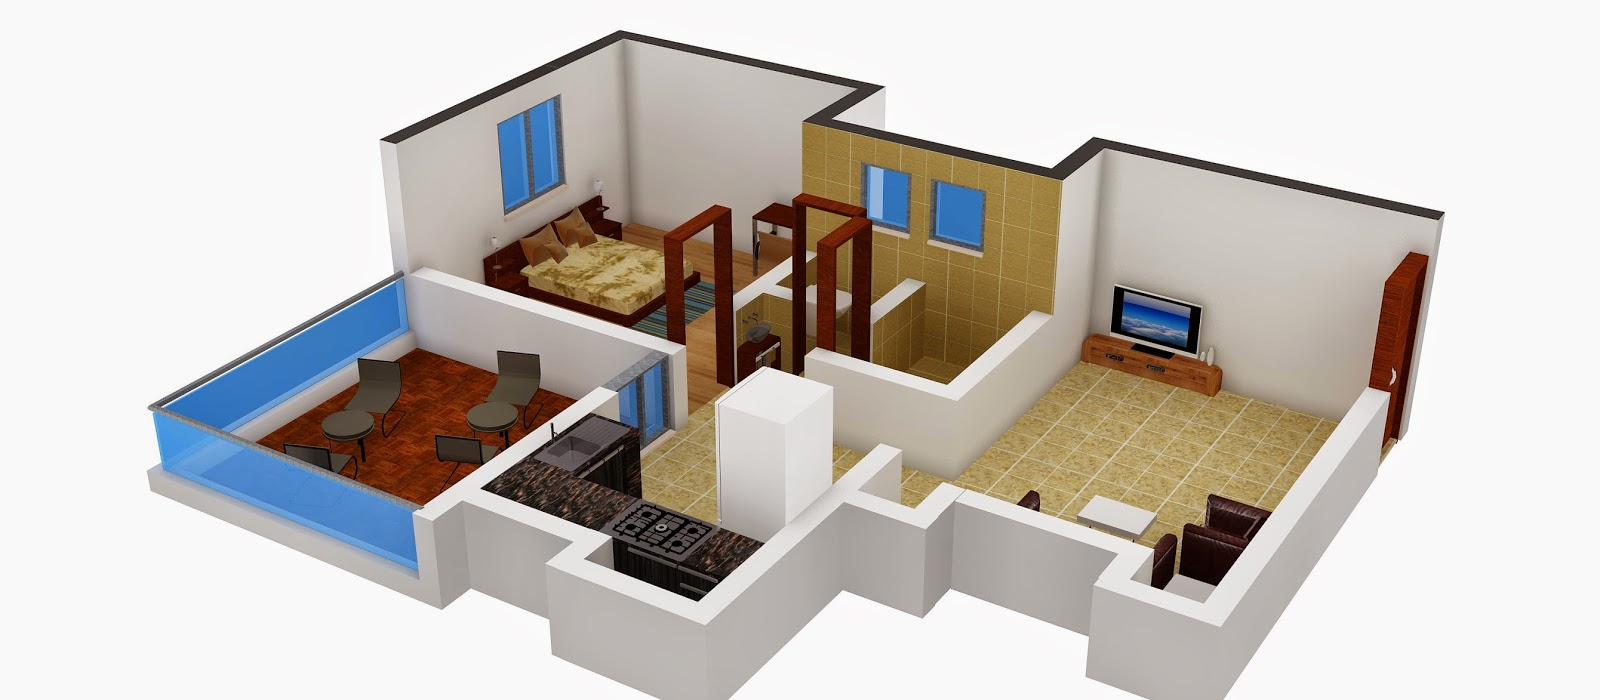 Interior design 1 bhk flat for 1 bhk flat interior decoration image